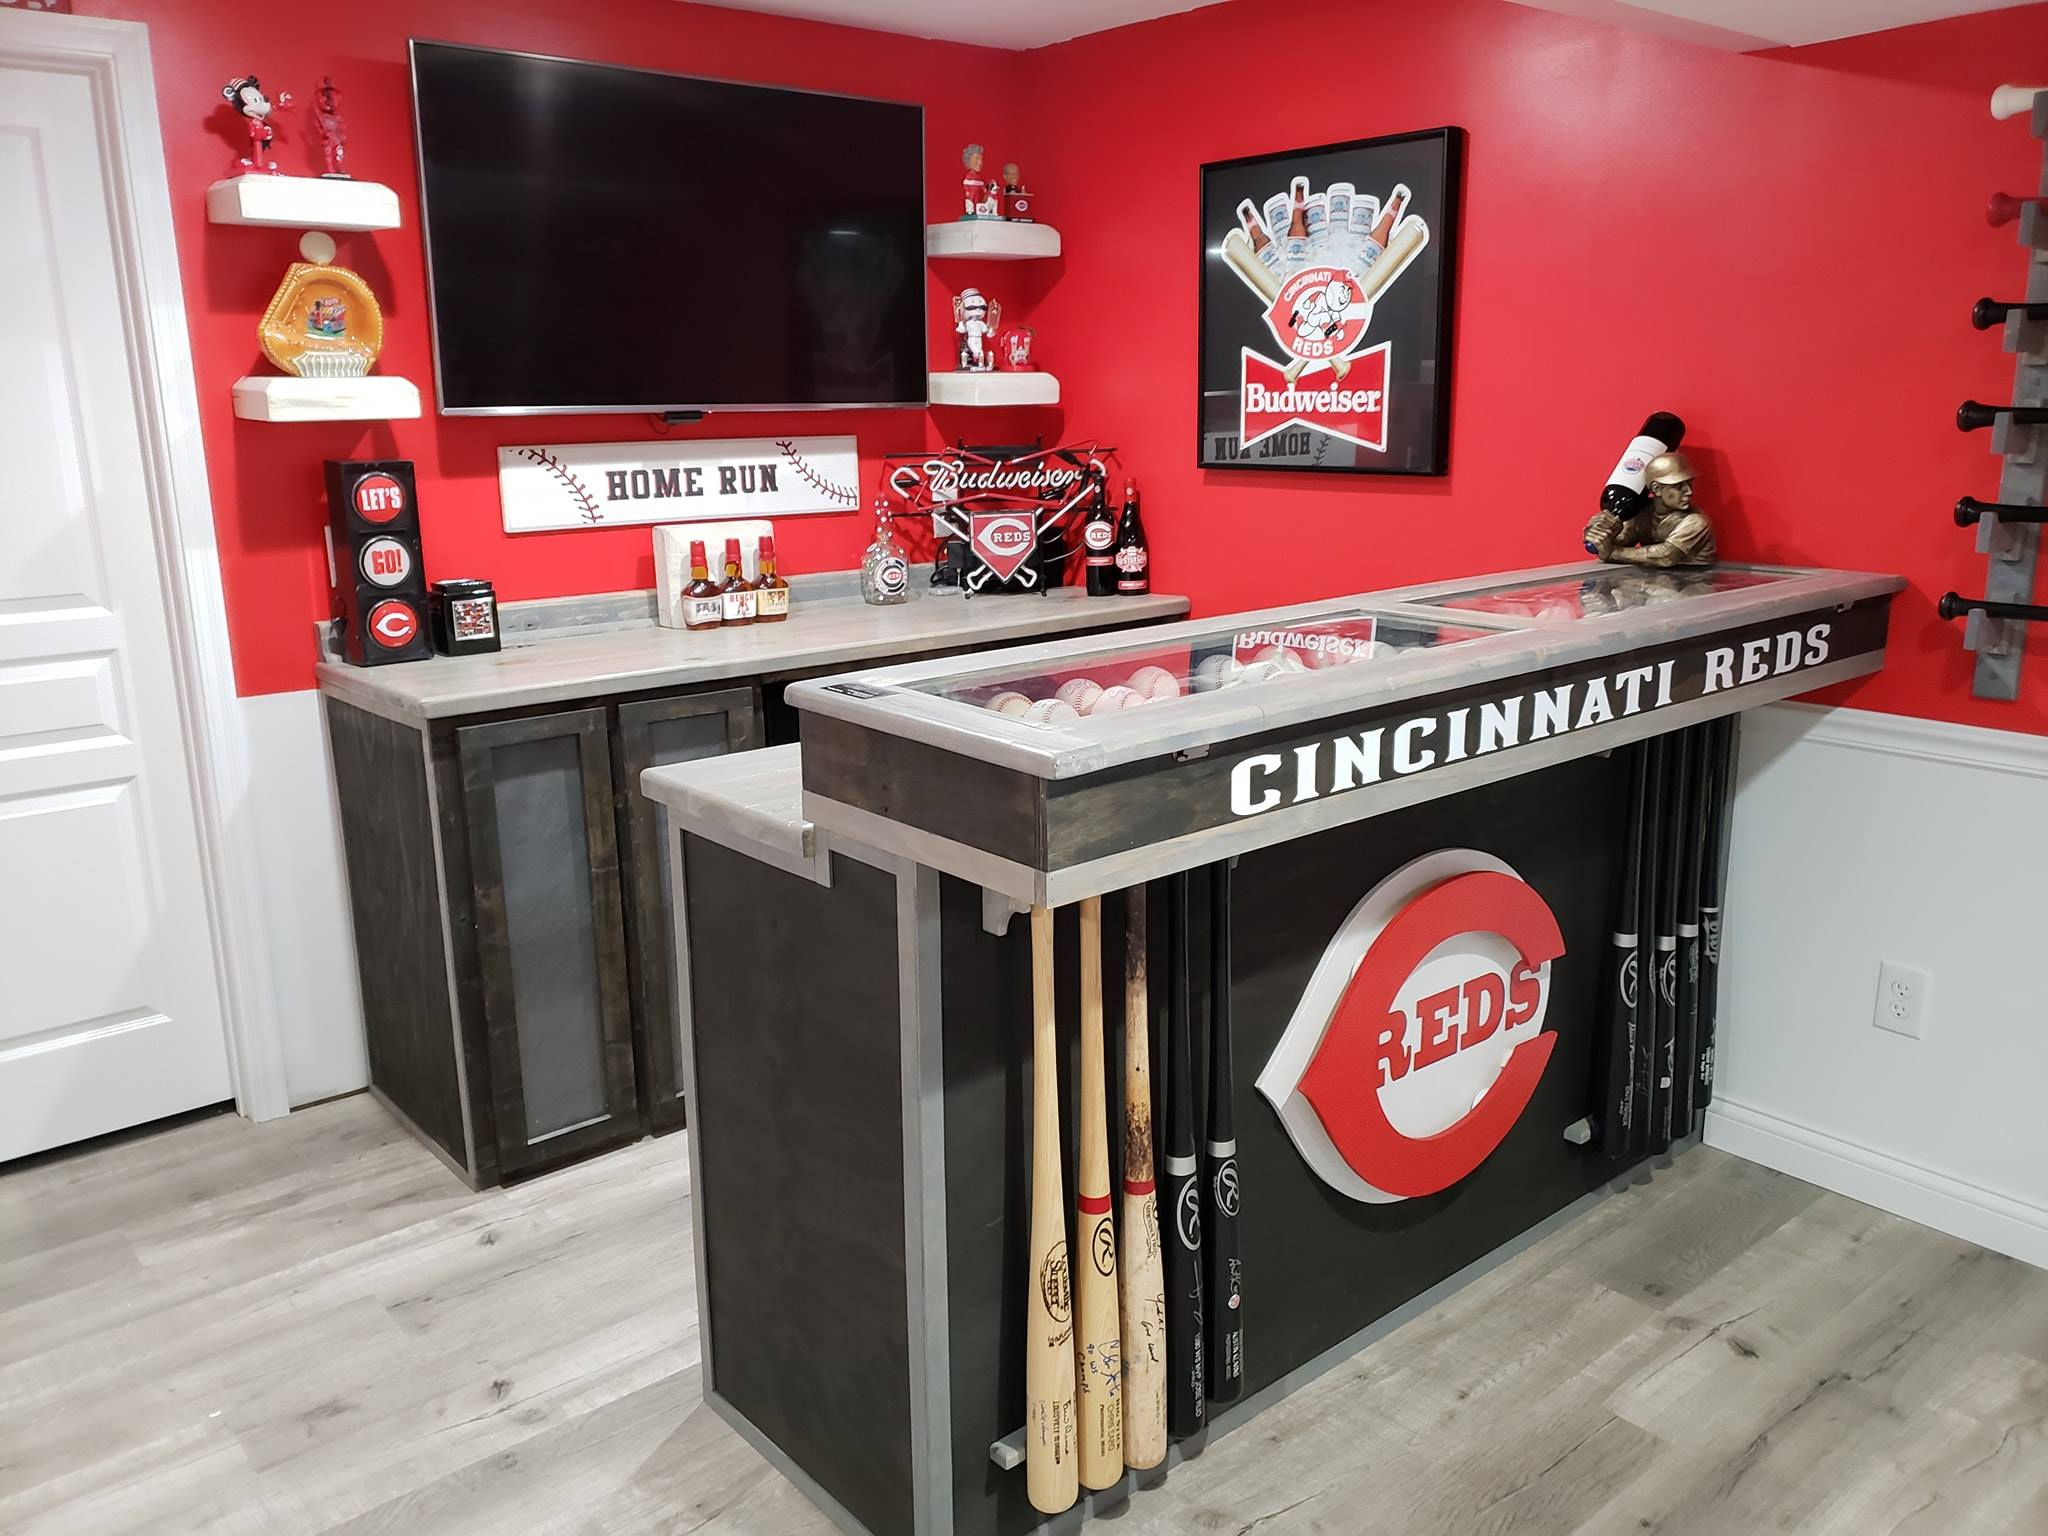 Cincinnati Reds bar (front and rear)